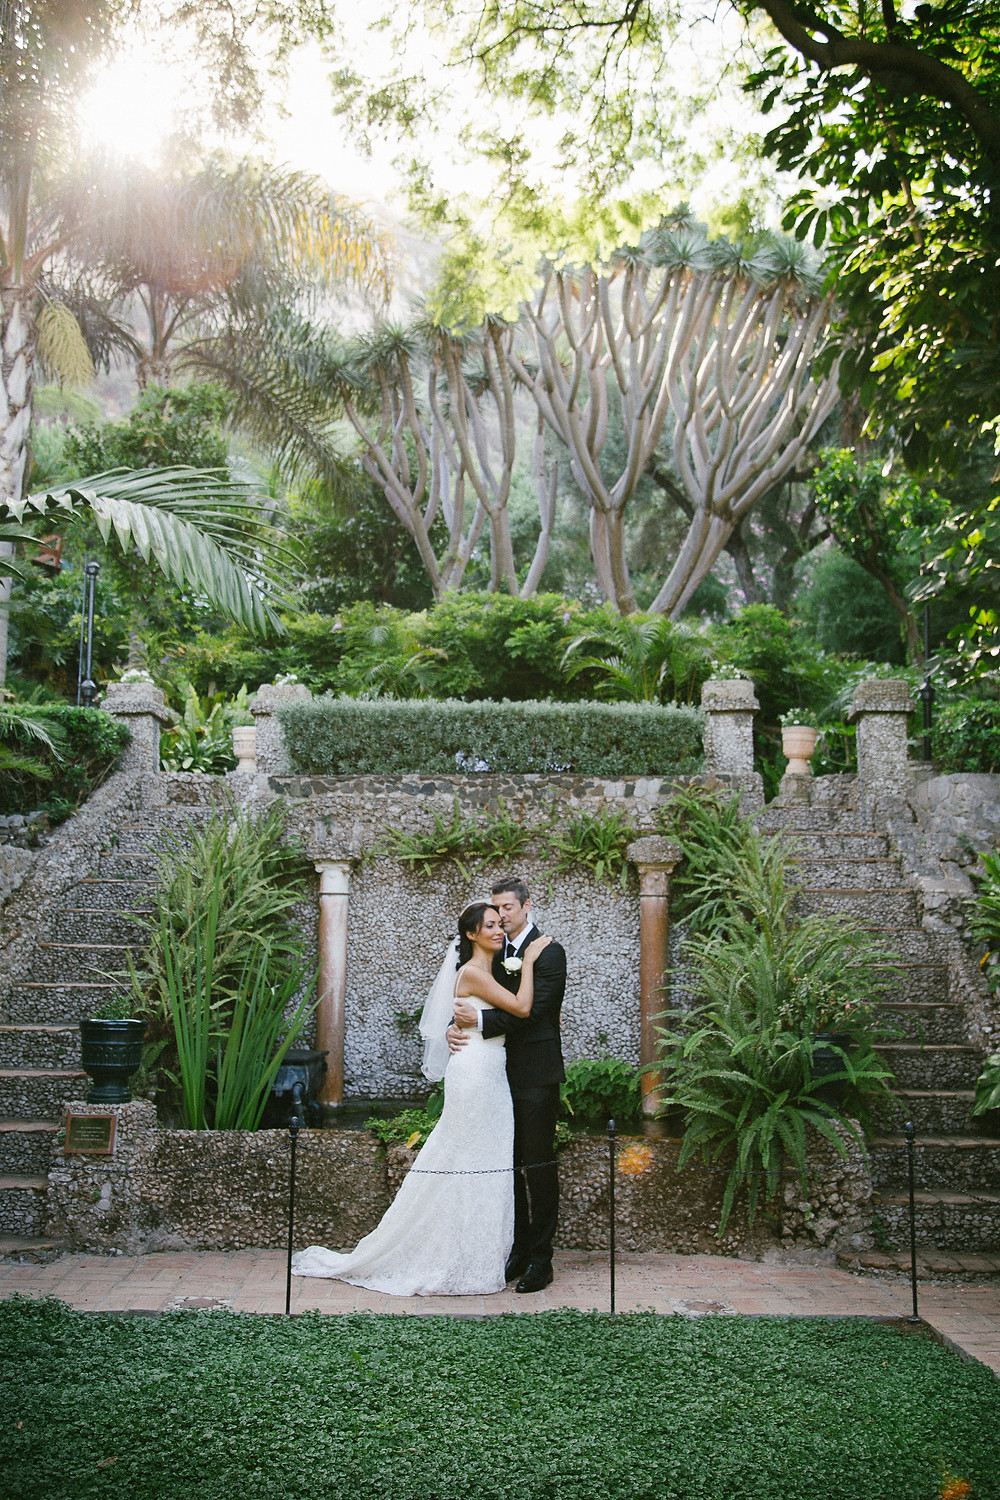 Elopement wedding at The Dell, a private garden within the Botanical gardens gibraltar